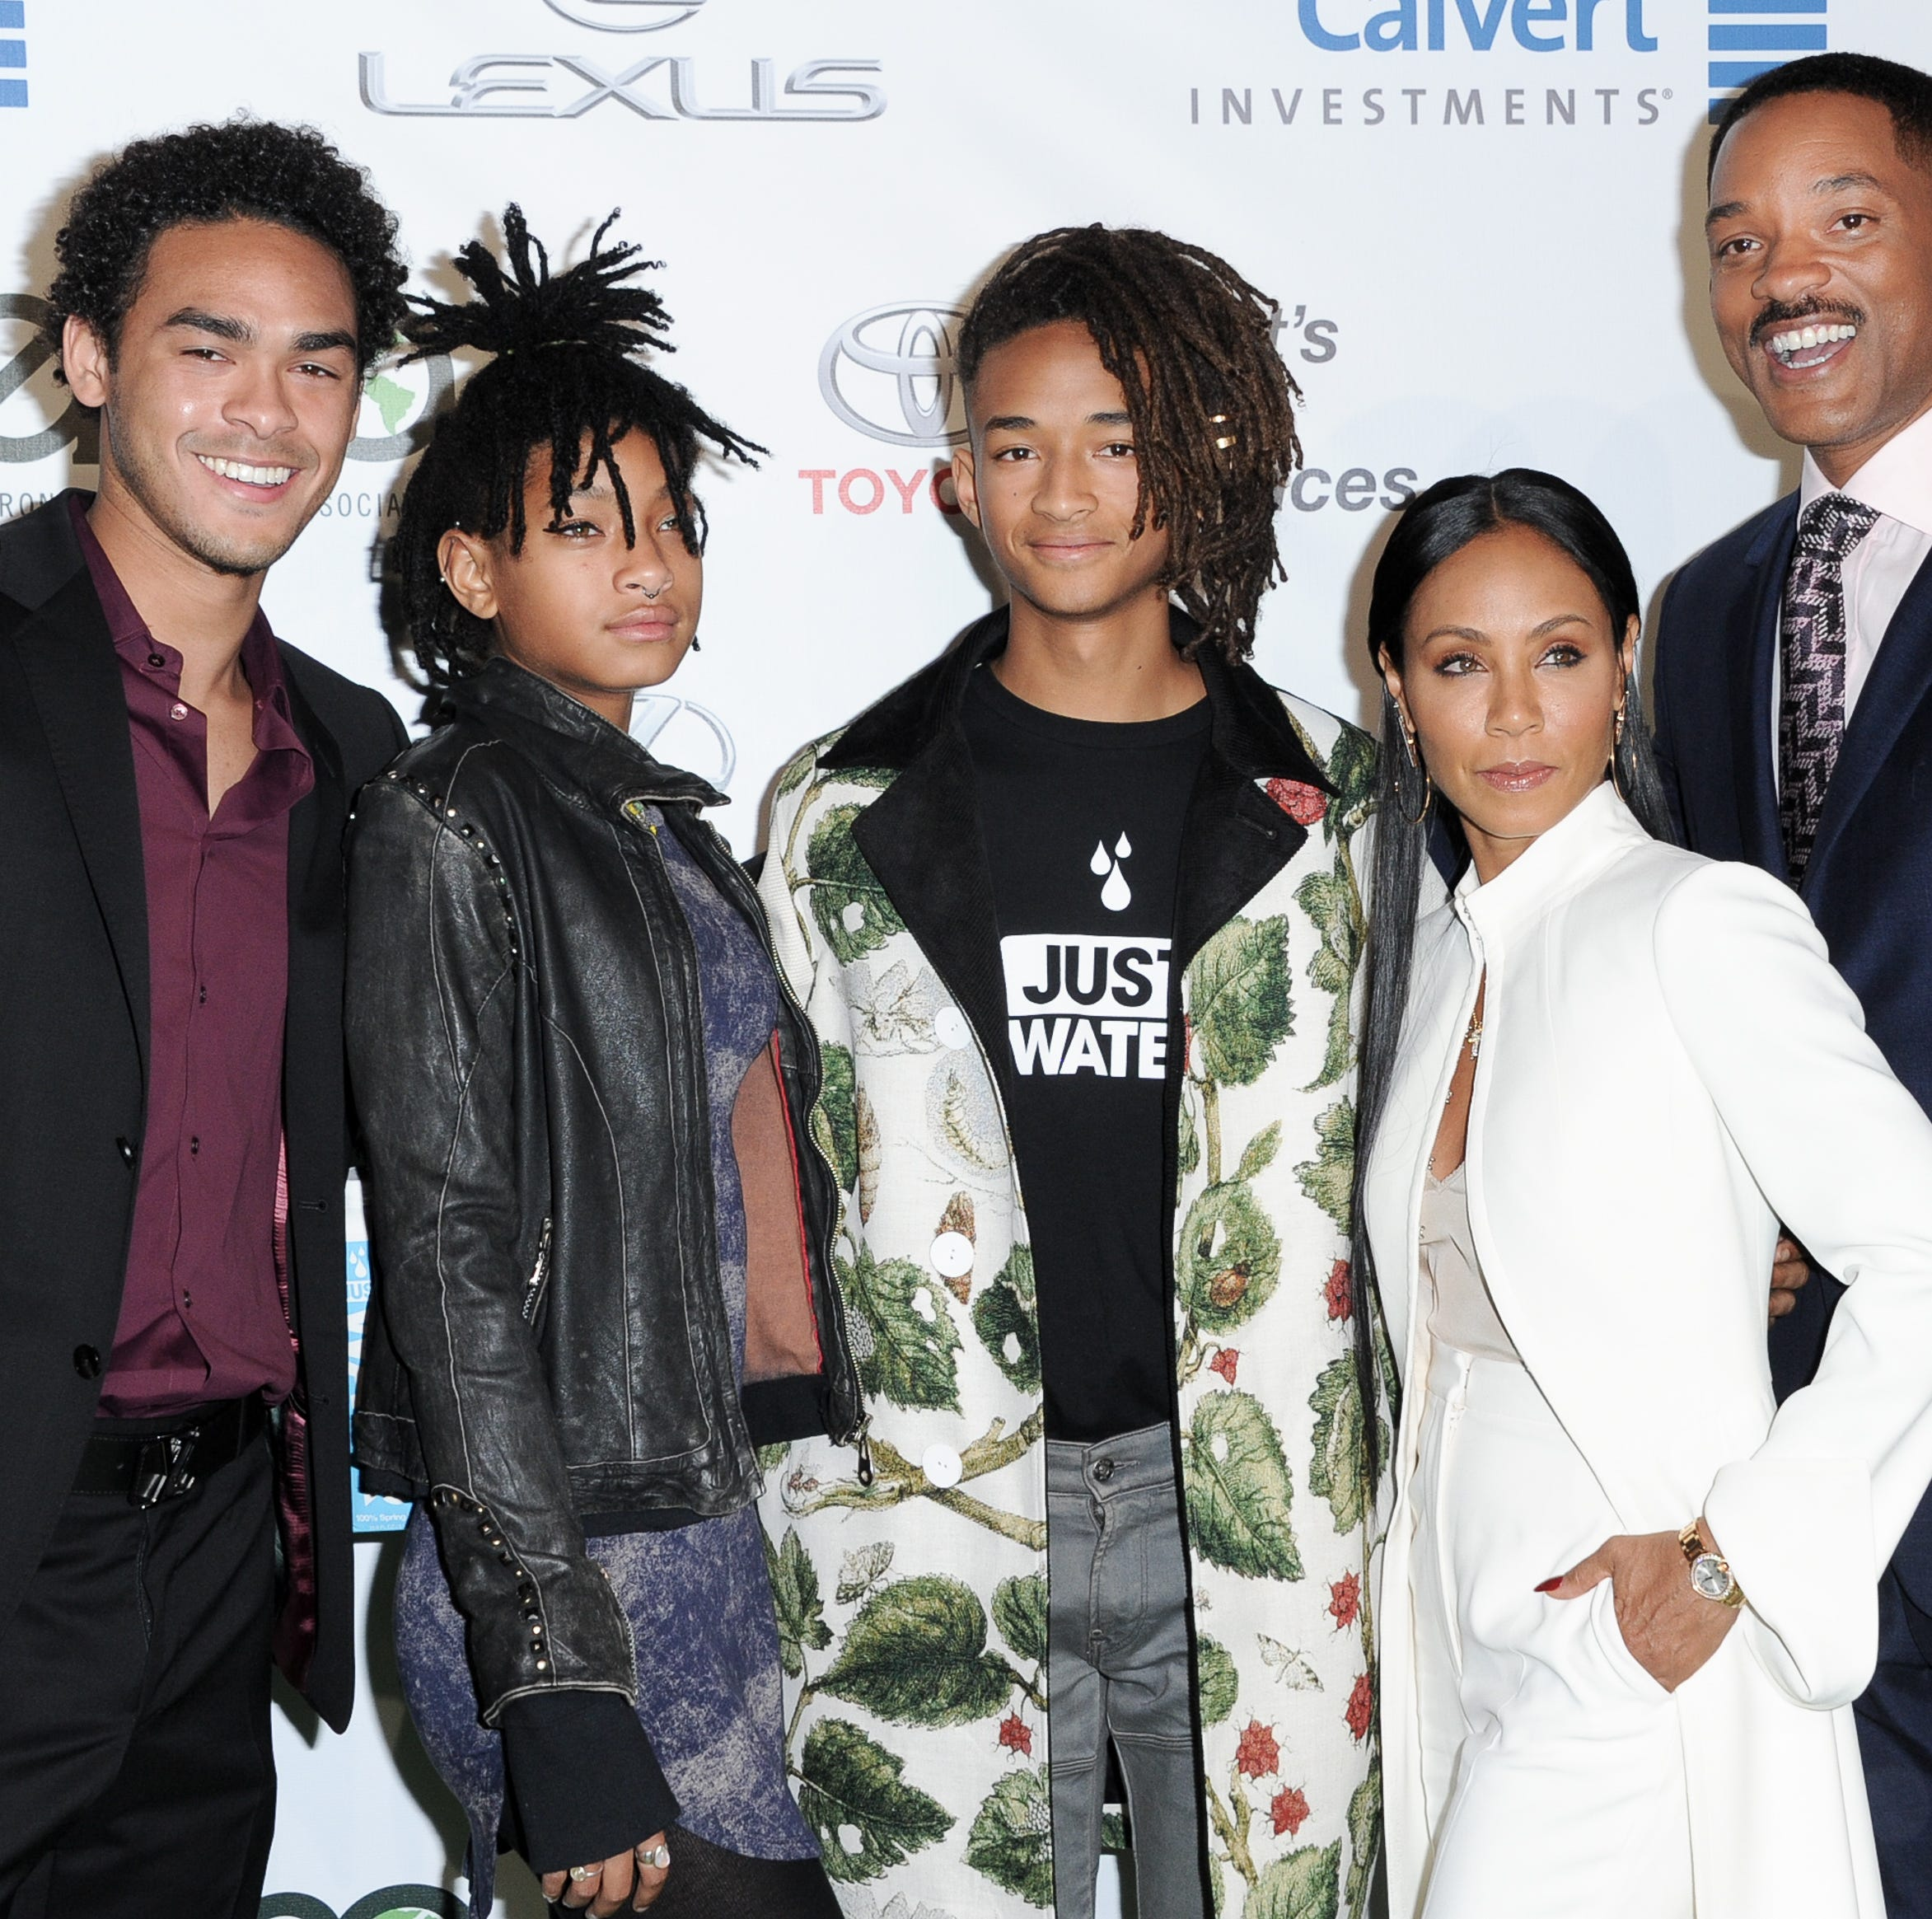 The Smith family, pictured here in 2016, is all together for the holidays: Trey Smith, from left, Willow Smith, Jaden Smith, Jada Pinkett Smith and Will Smith.